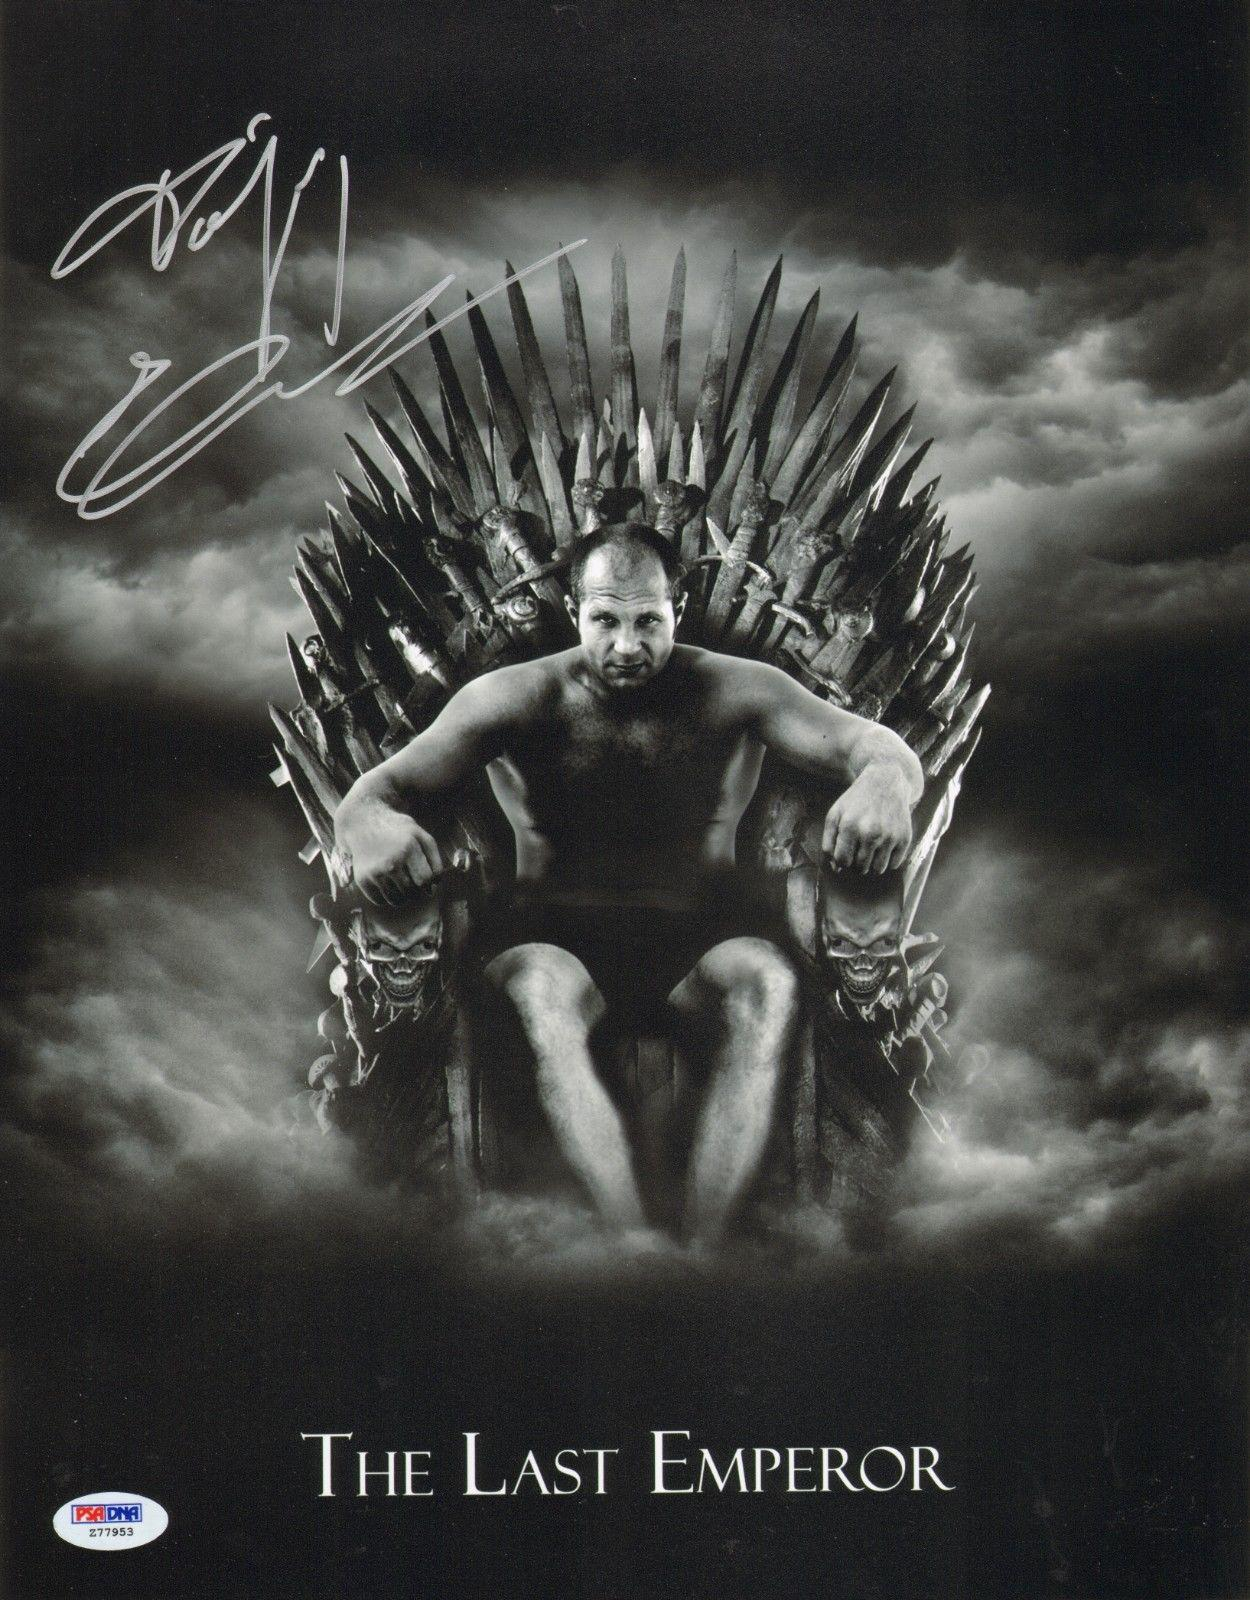 Fedor Emelianenko Signed 11x14 Photo PSA/DNA COA Game of Thrones UFC Pride Auto